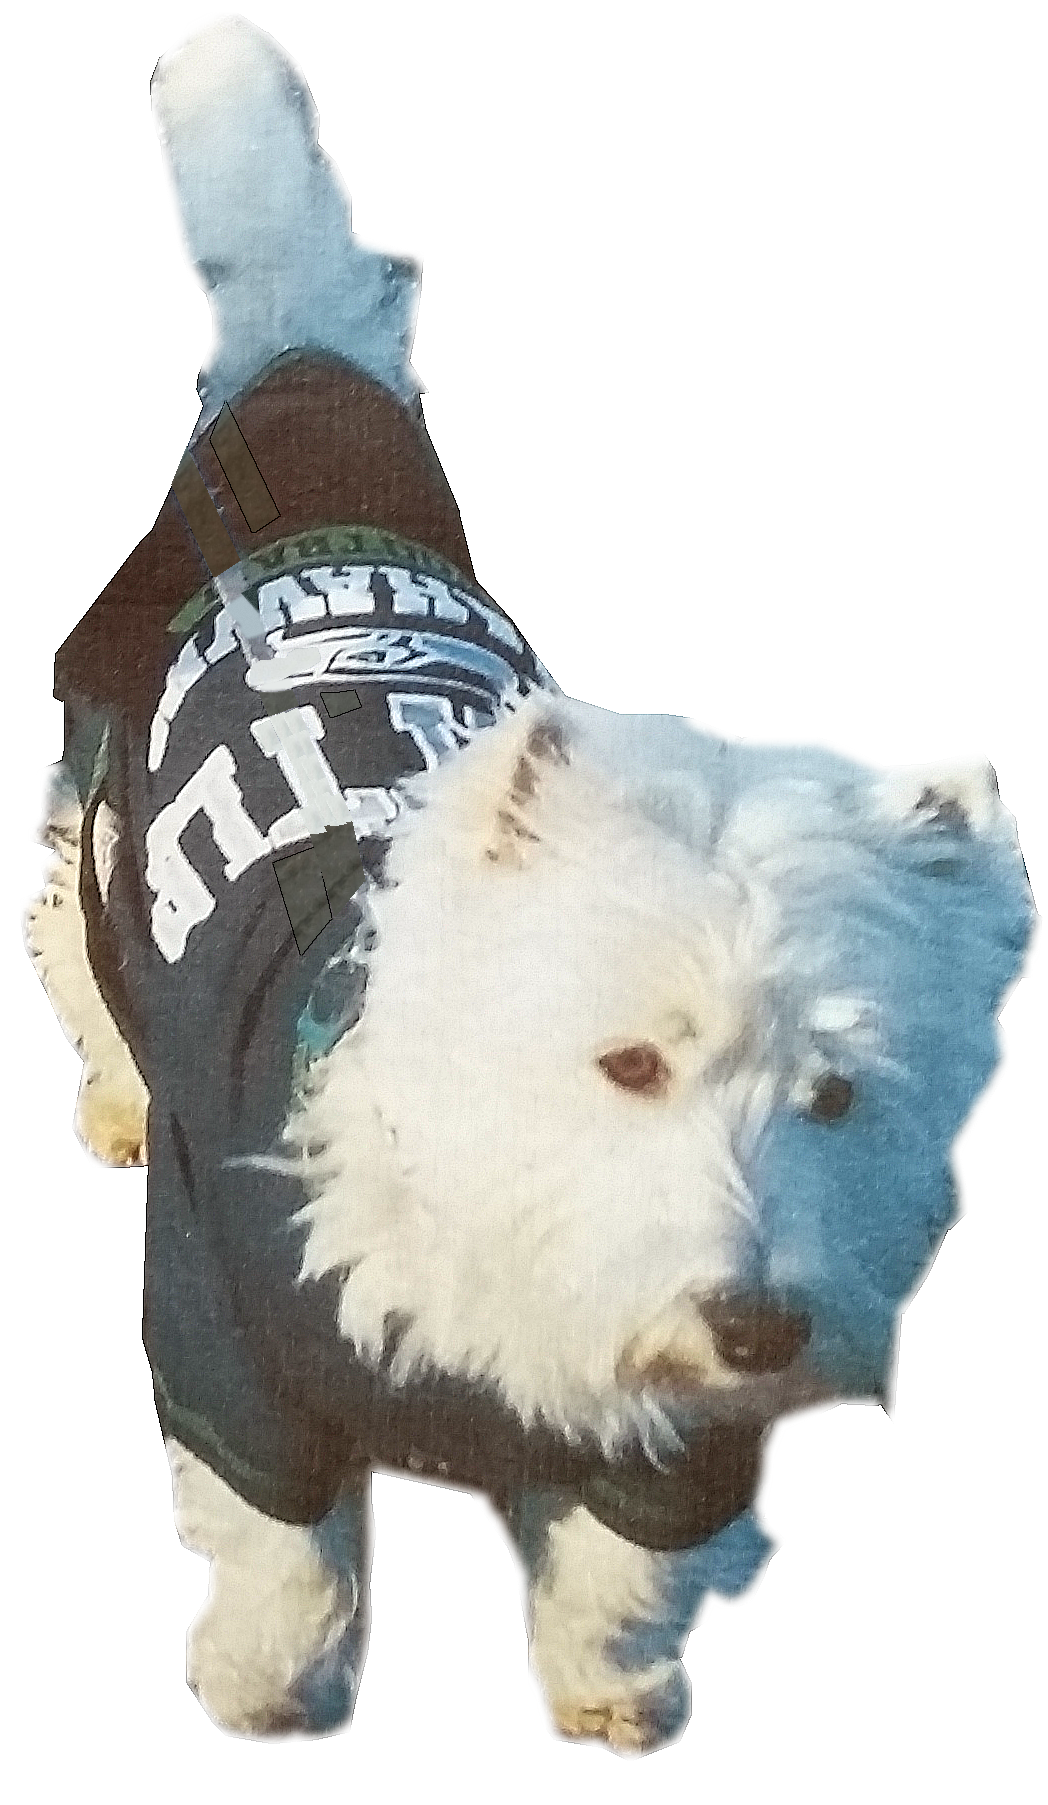 West Highland White Terrier wearing a Seahawks Shirt